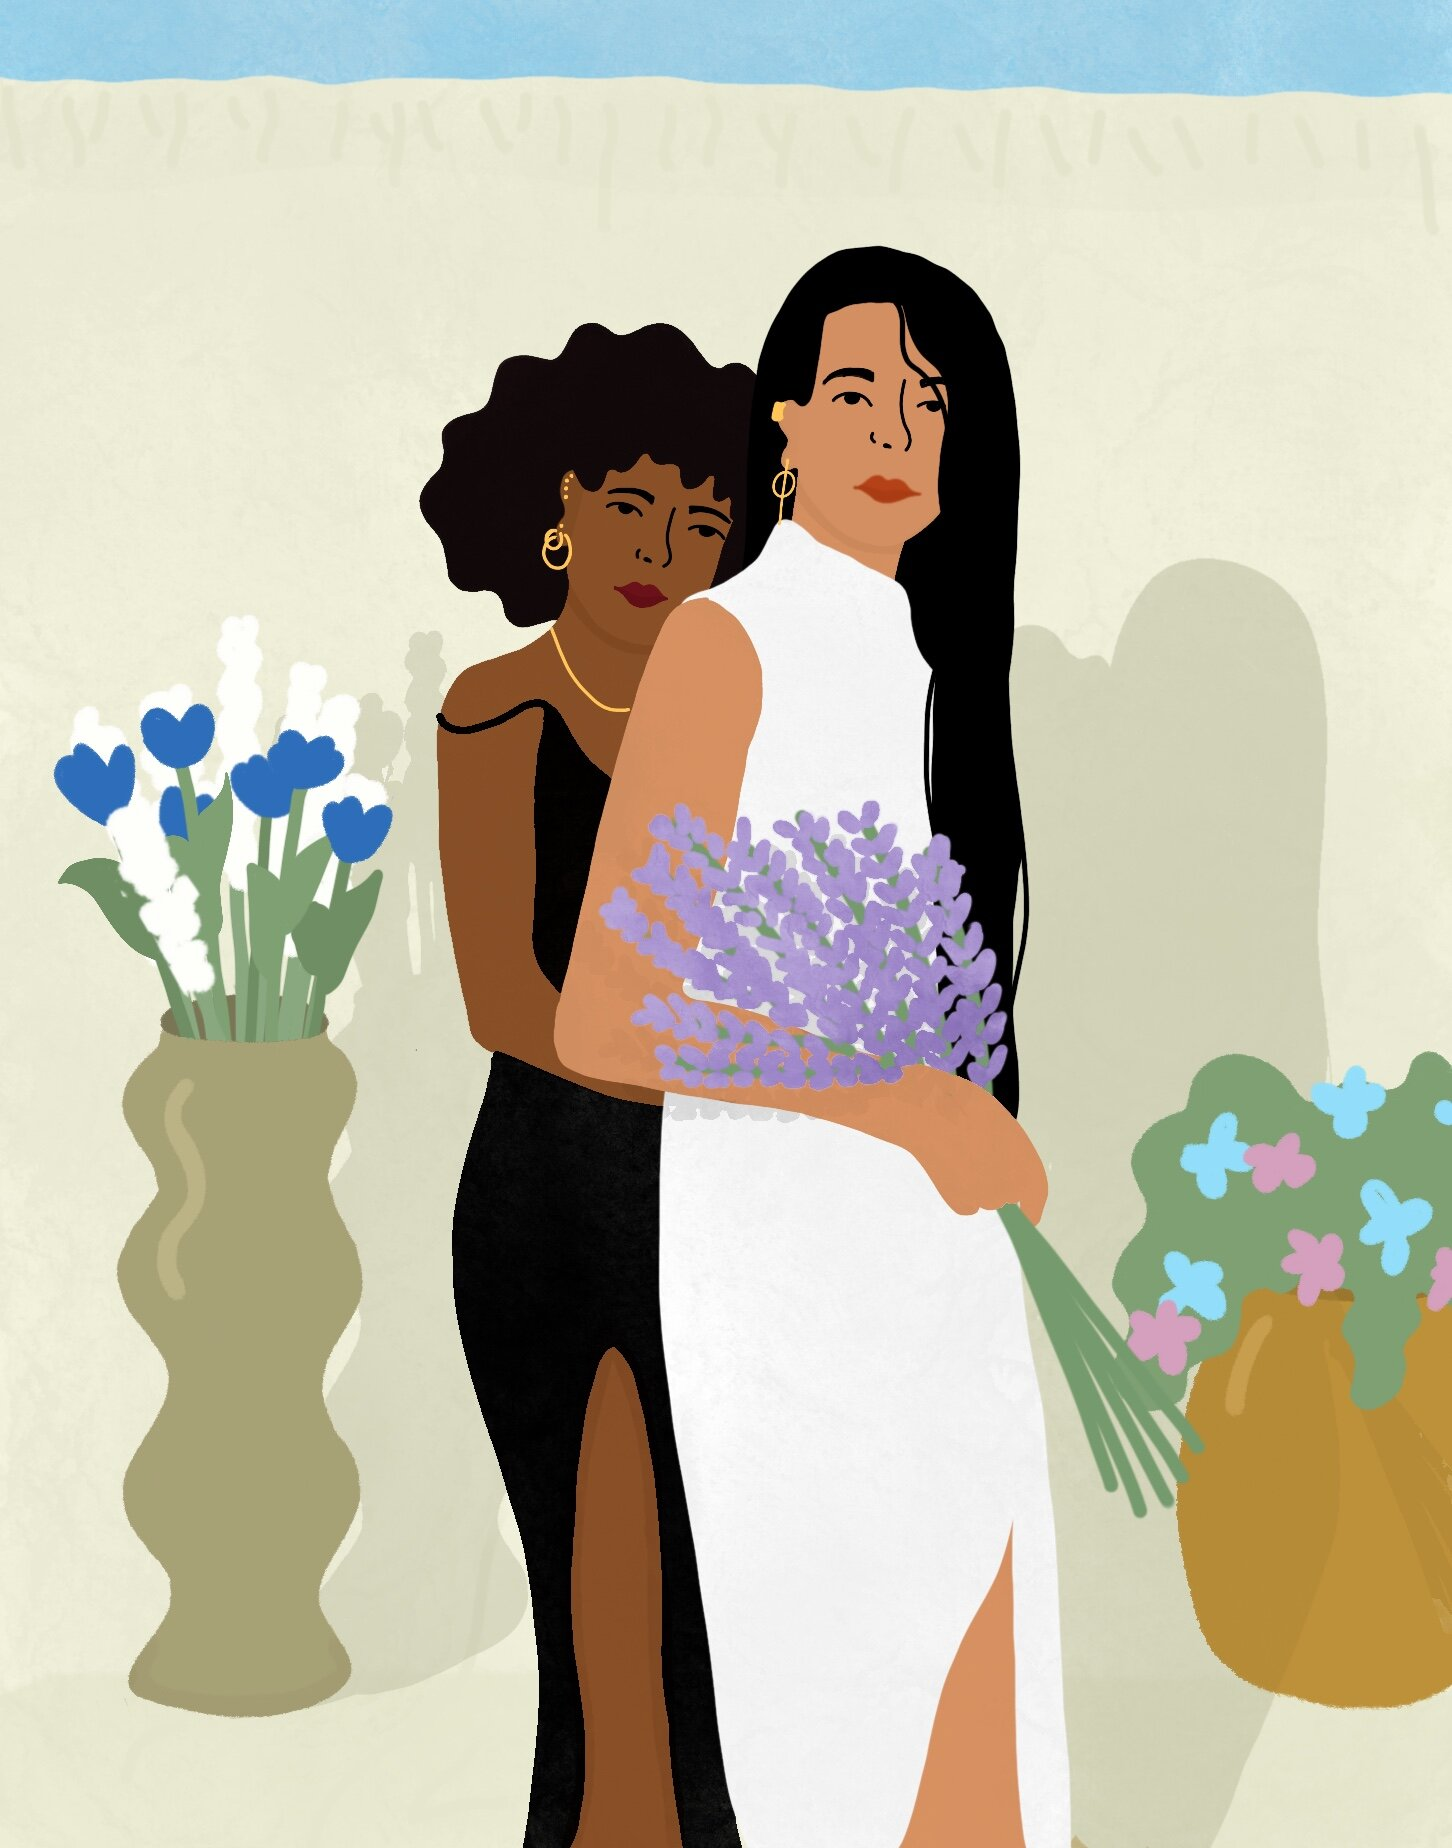 Two characters pose as a couple, with the taller character holding a bouquet of purple flowers.